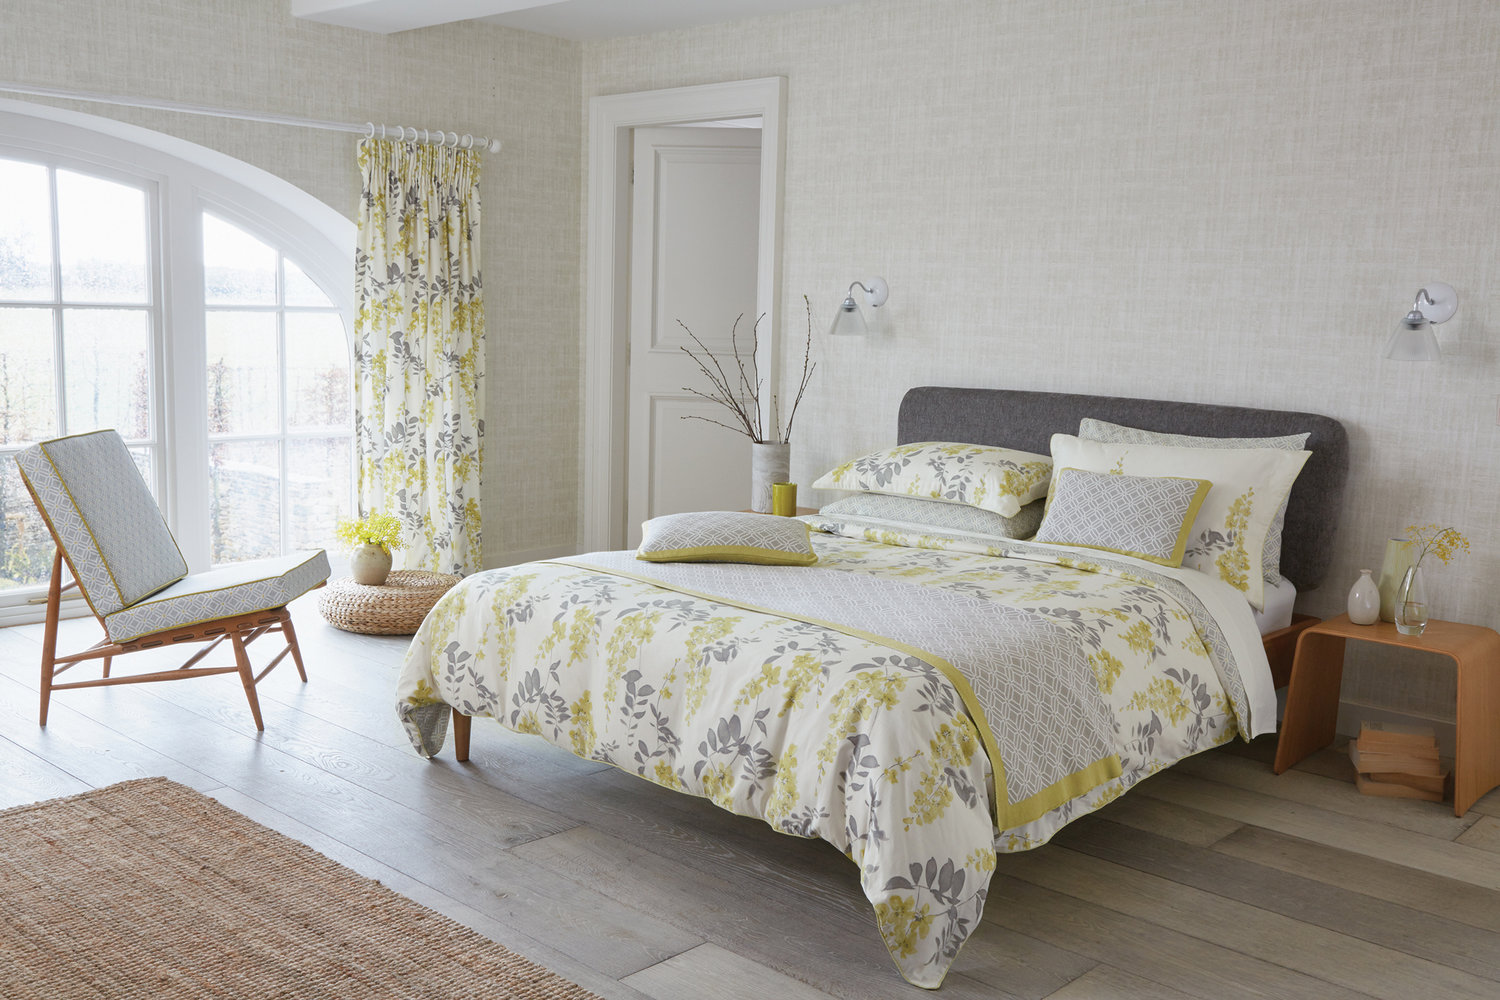 Sanderson Wisteria Blossom Oxford Pillowcase Linden & Charcoal extra image